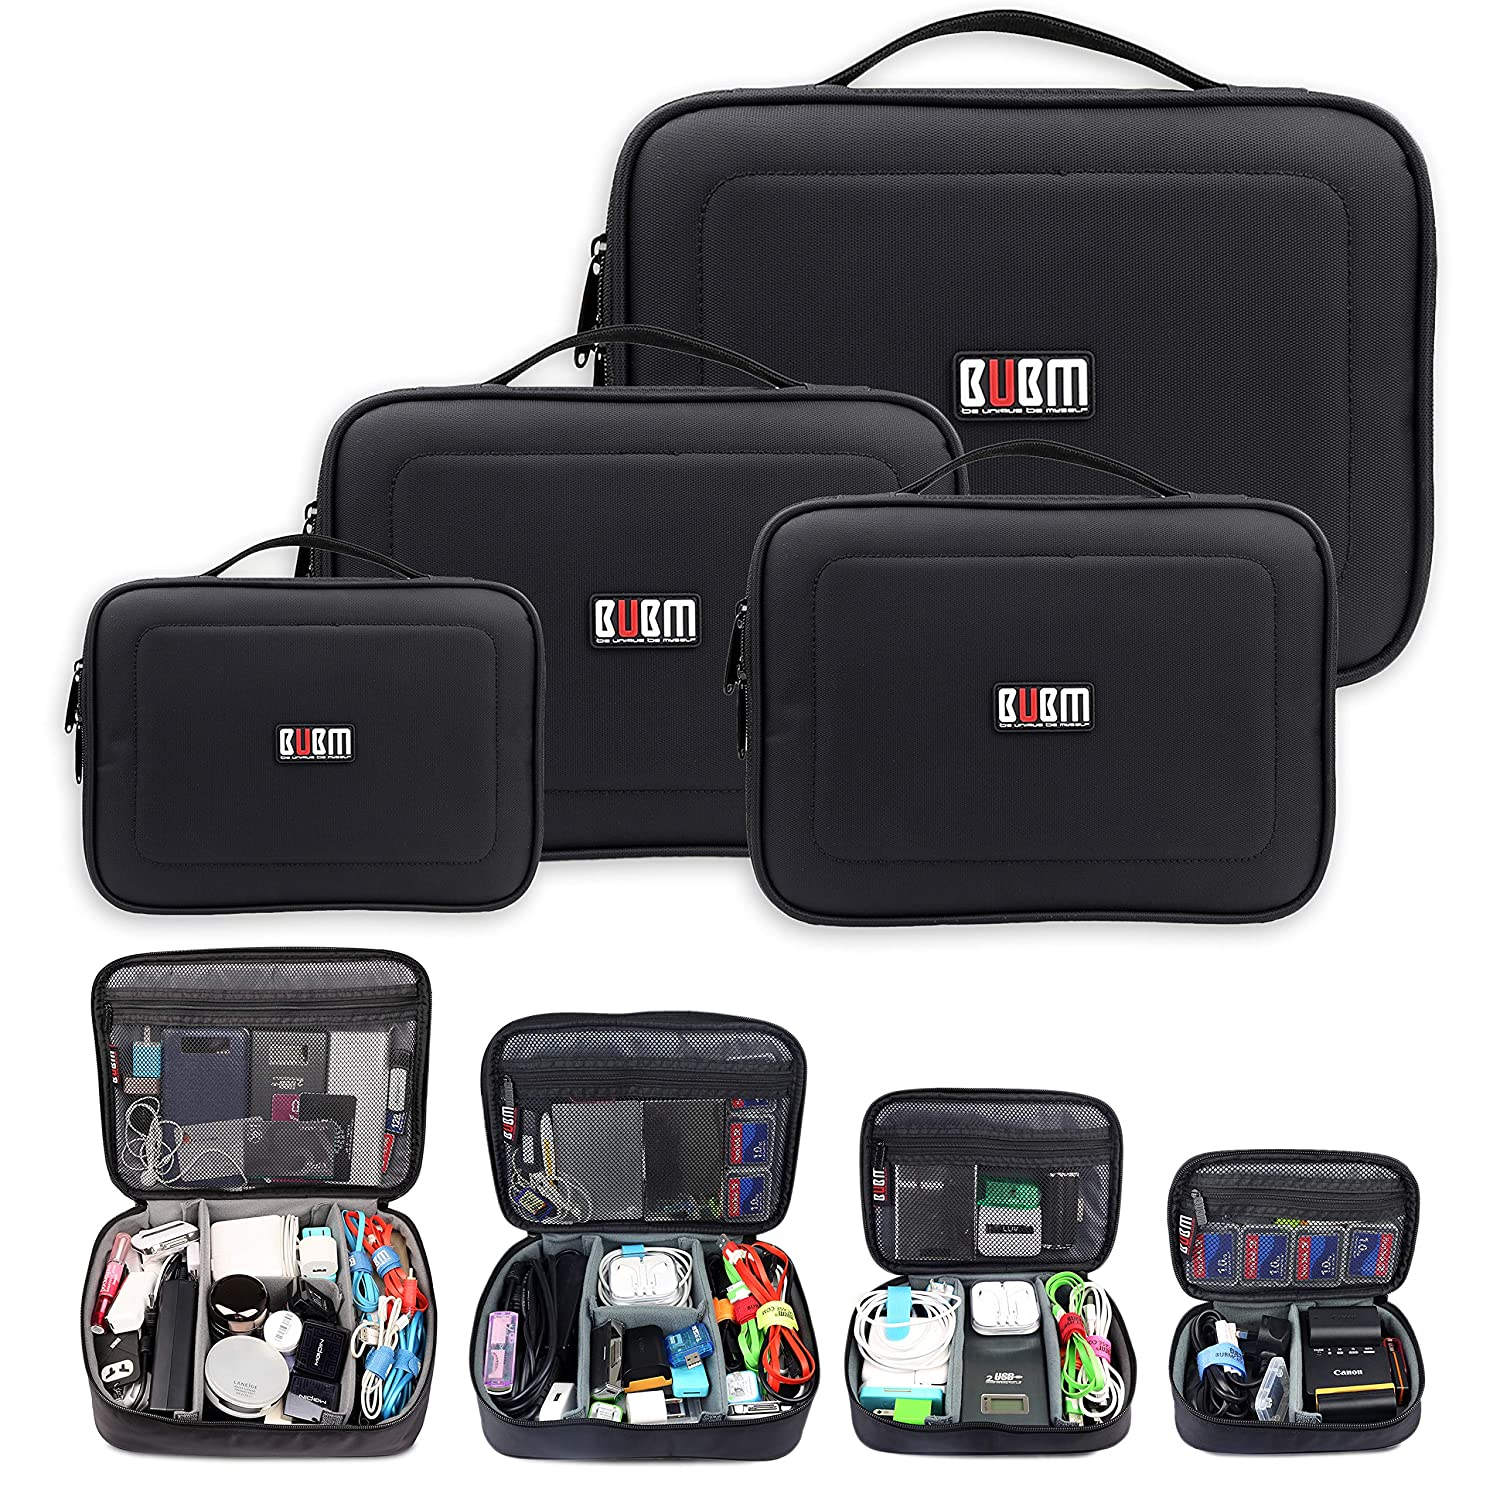 Double Layer Travel Carrying Case Grey Suitable for USB Drive SAMSHOWS Cable Organiser Bag Charger Headphone and IPad etc